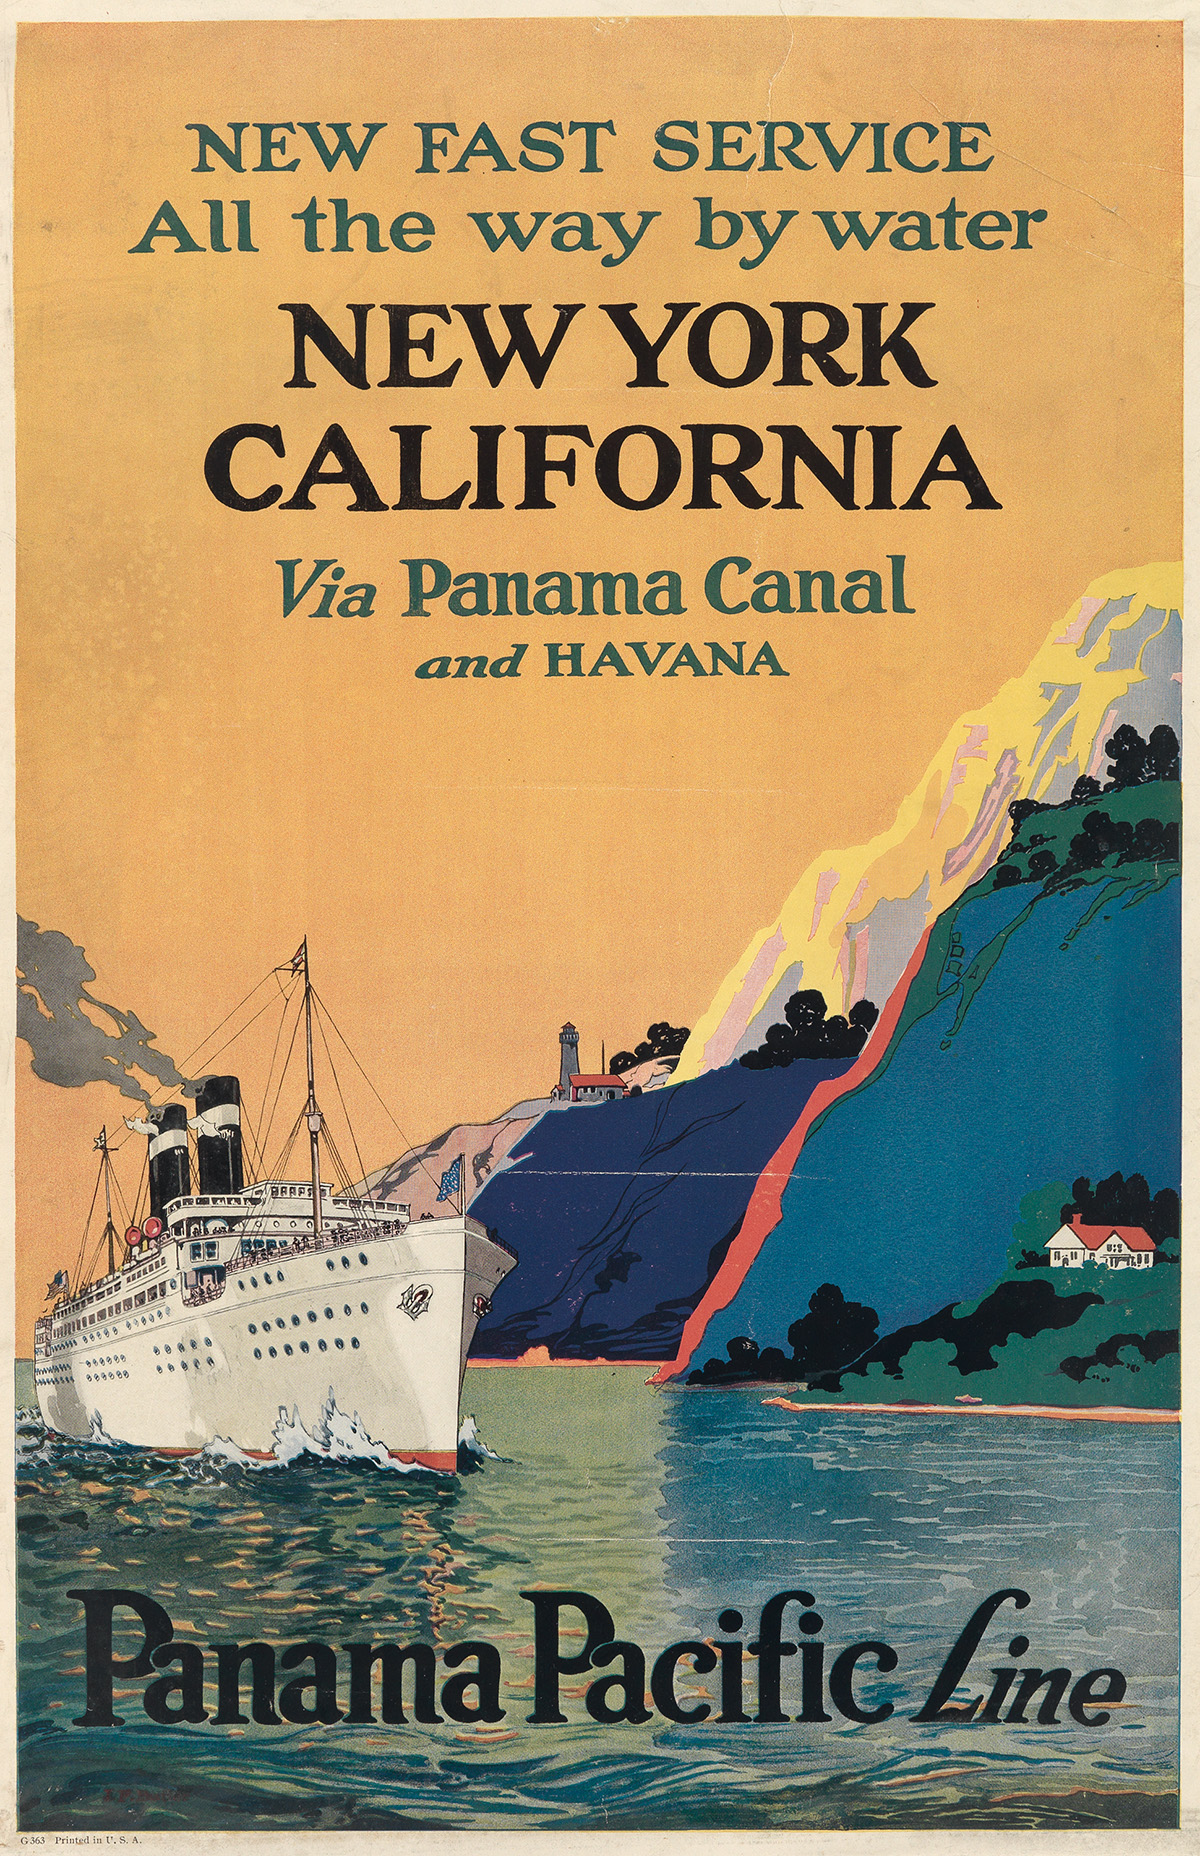 JF-BUTLER-(DATES-UNKNOWN)-PANAMA-PACIFIC-LINE--NEW-YORK-CALI